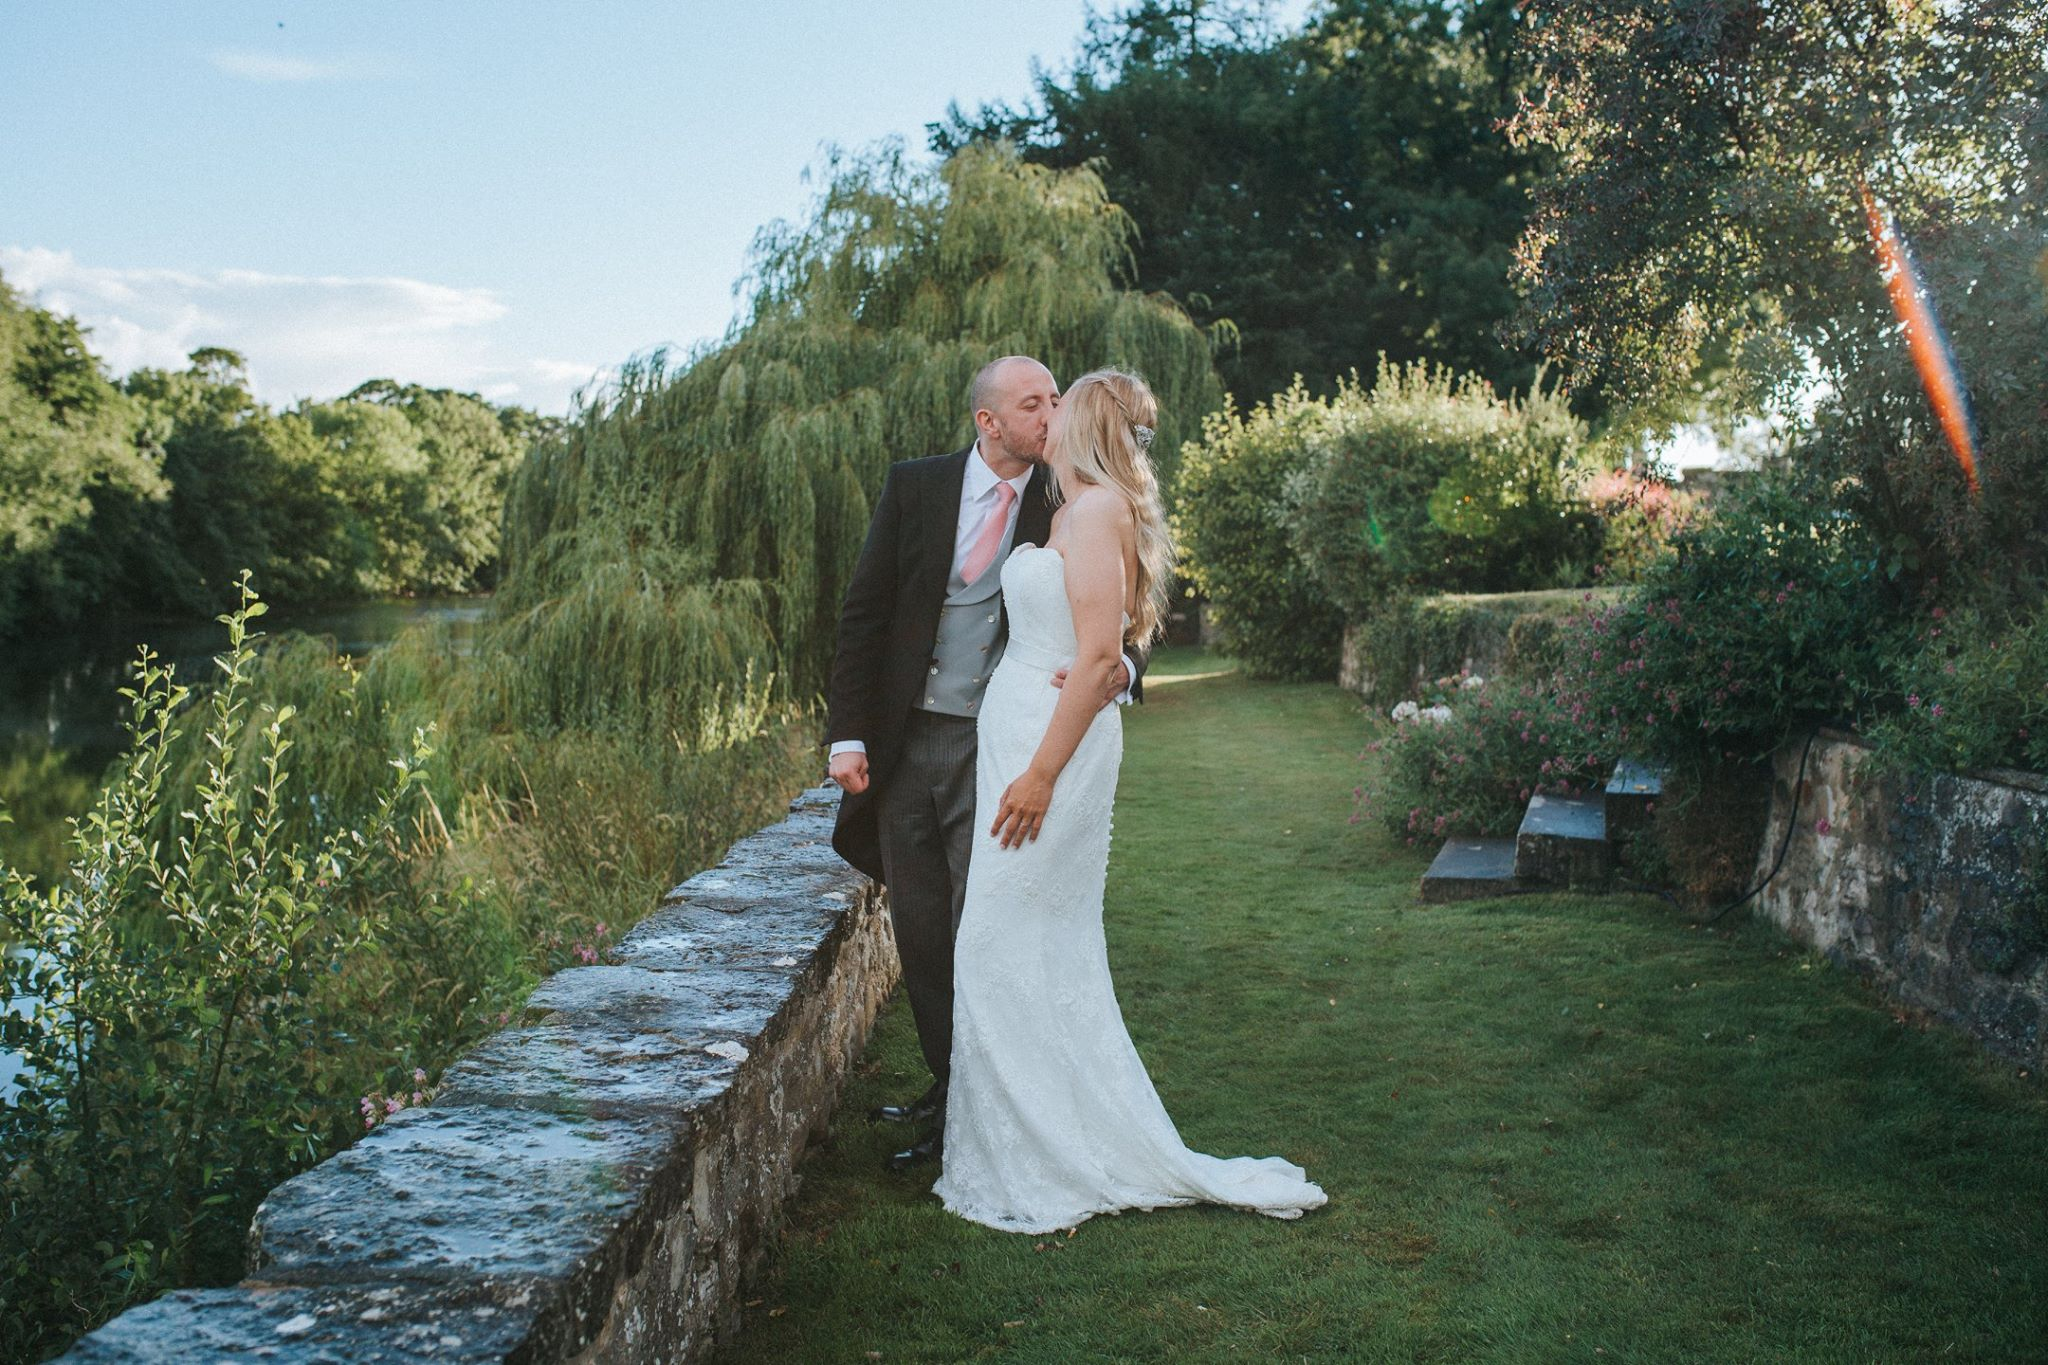 yorkshire family wedding marquee outdoor